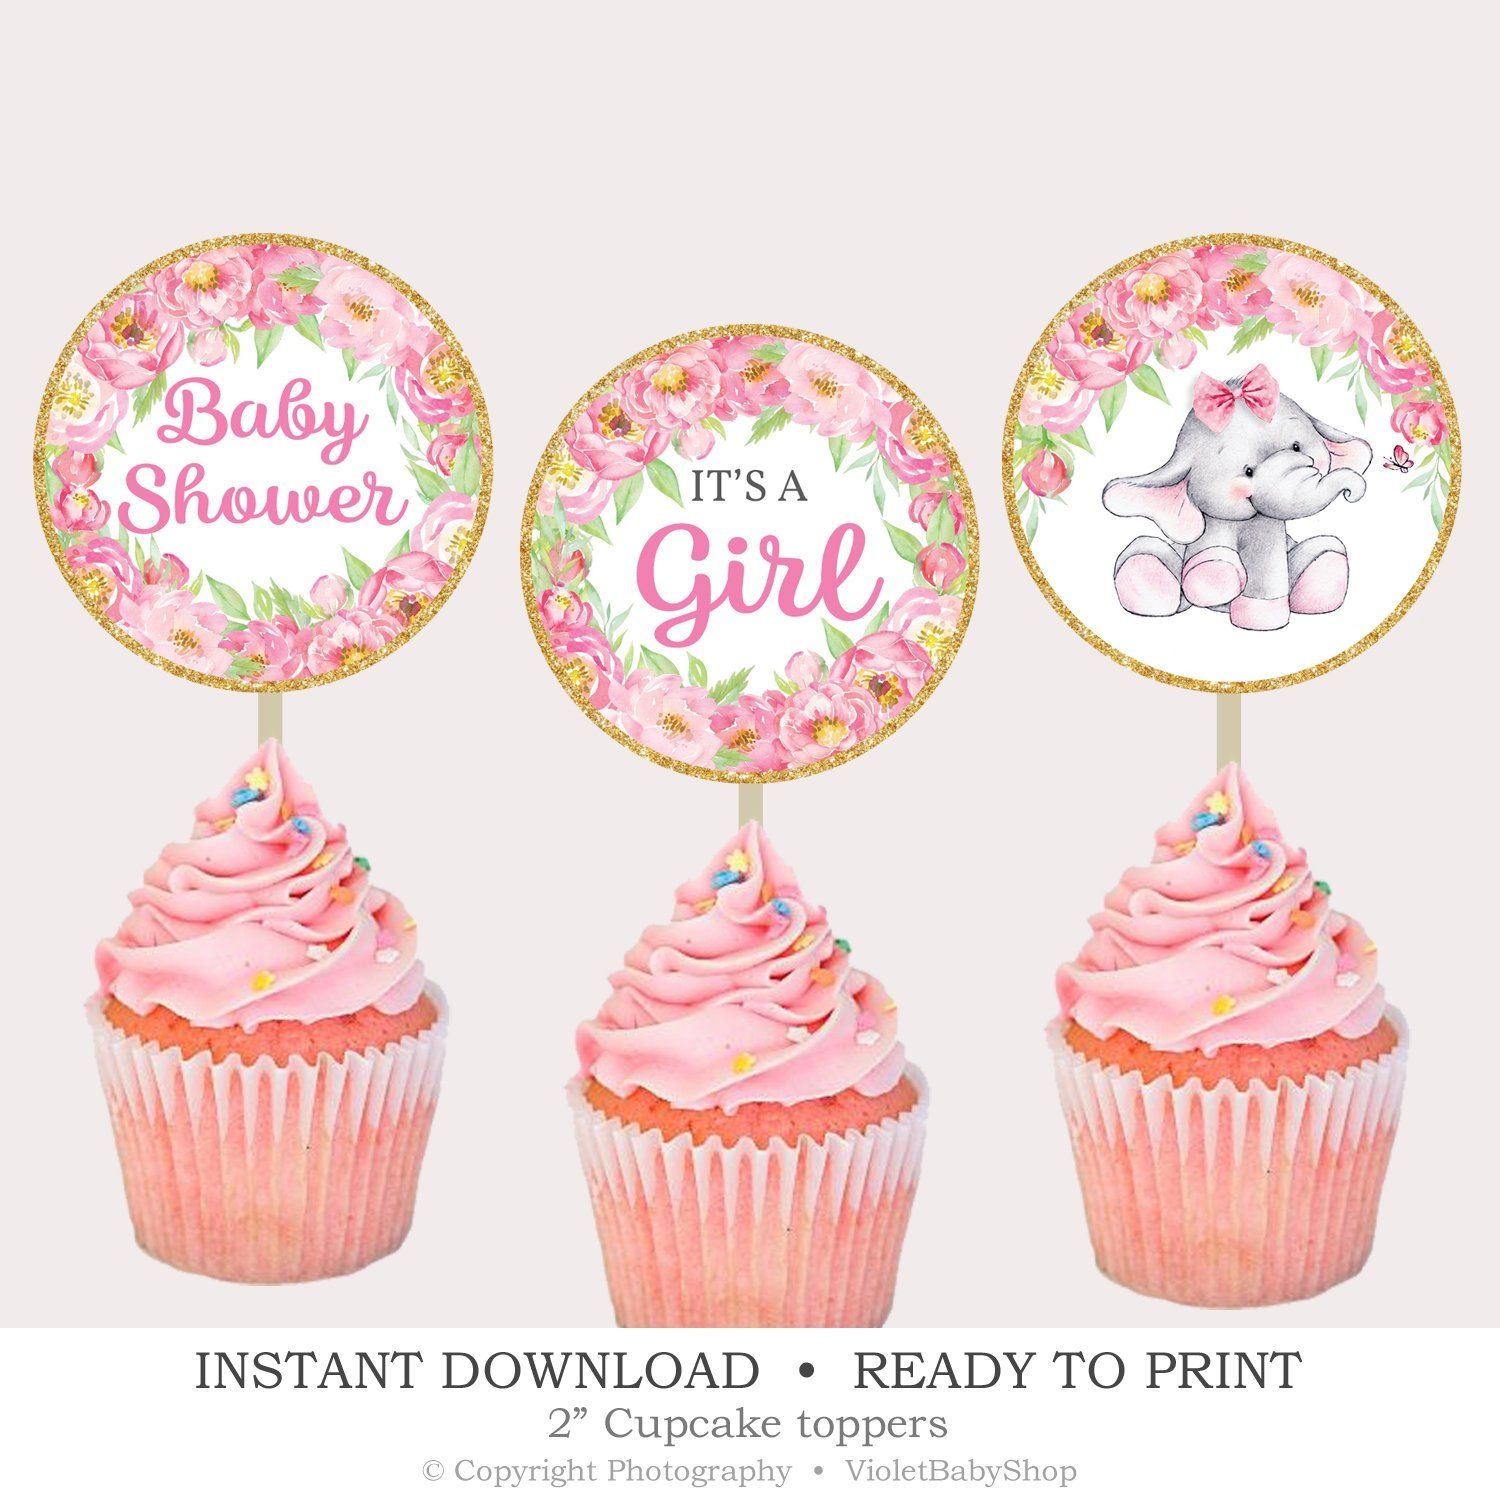 Gender Reveal Shower Cute Elephant Cupcake Topper Decoration- Fun Toppers Girl Baby Shower Boy Baby Shower